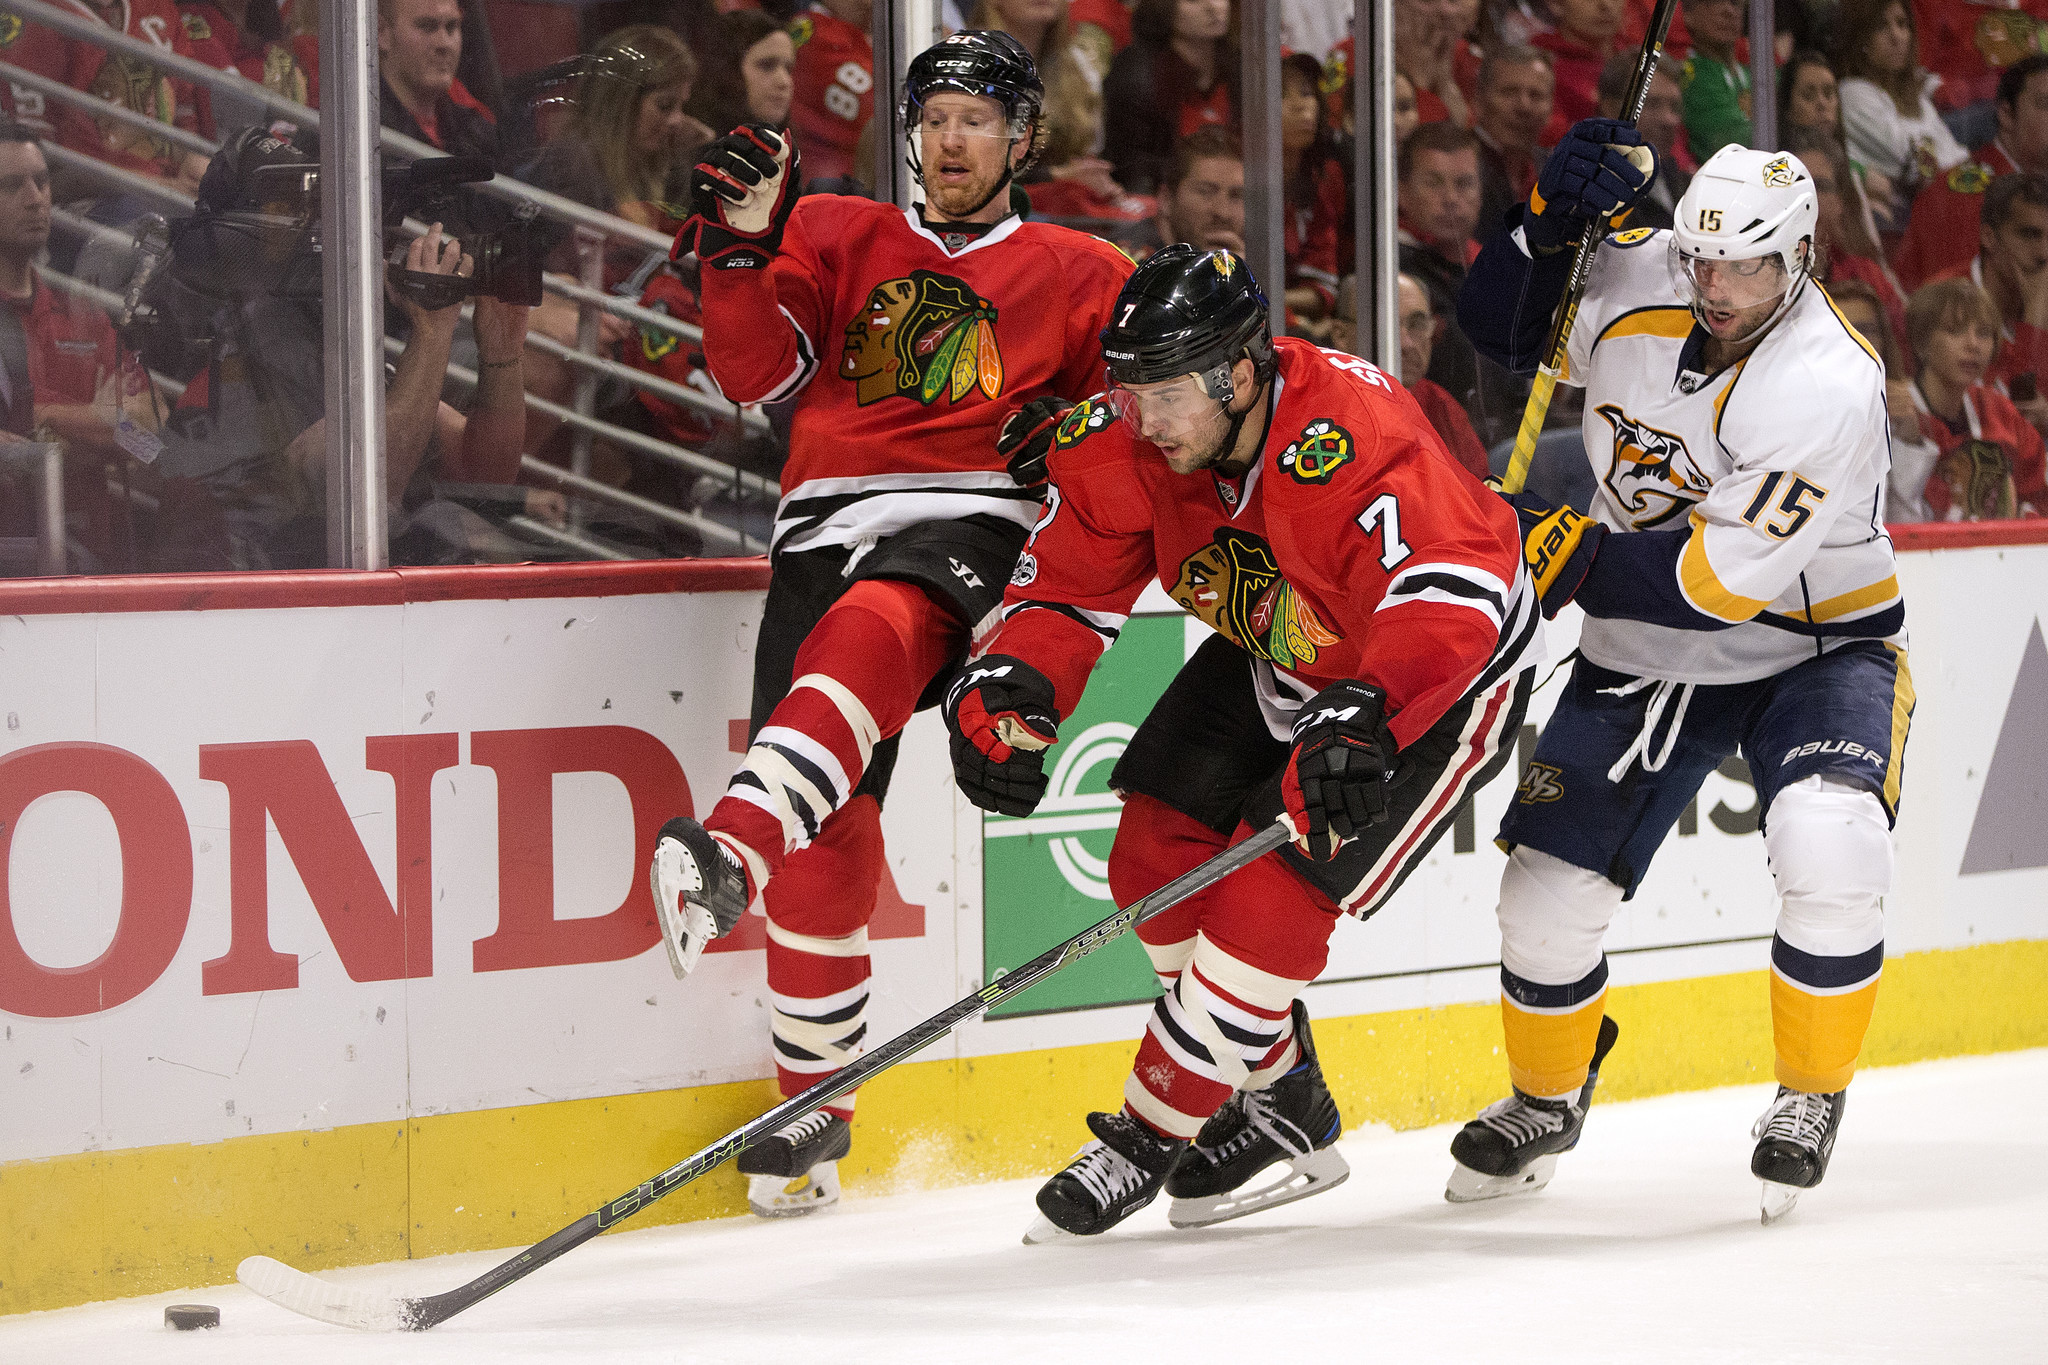 Ct-blackhawks-defensemen-do-their-part-spt-0417-20170416